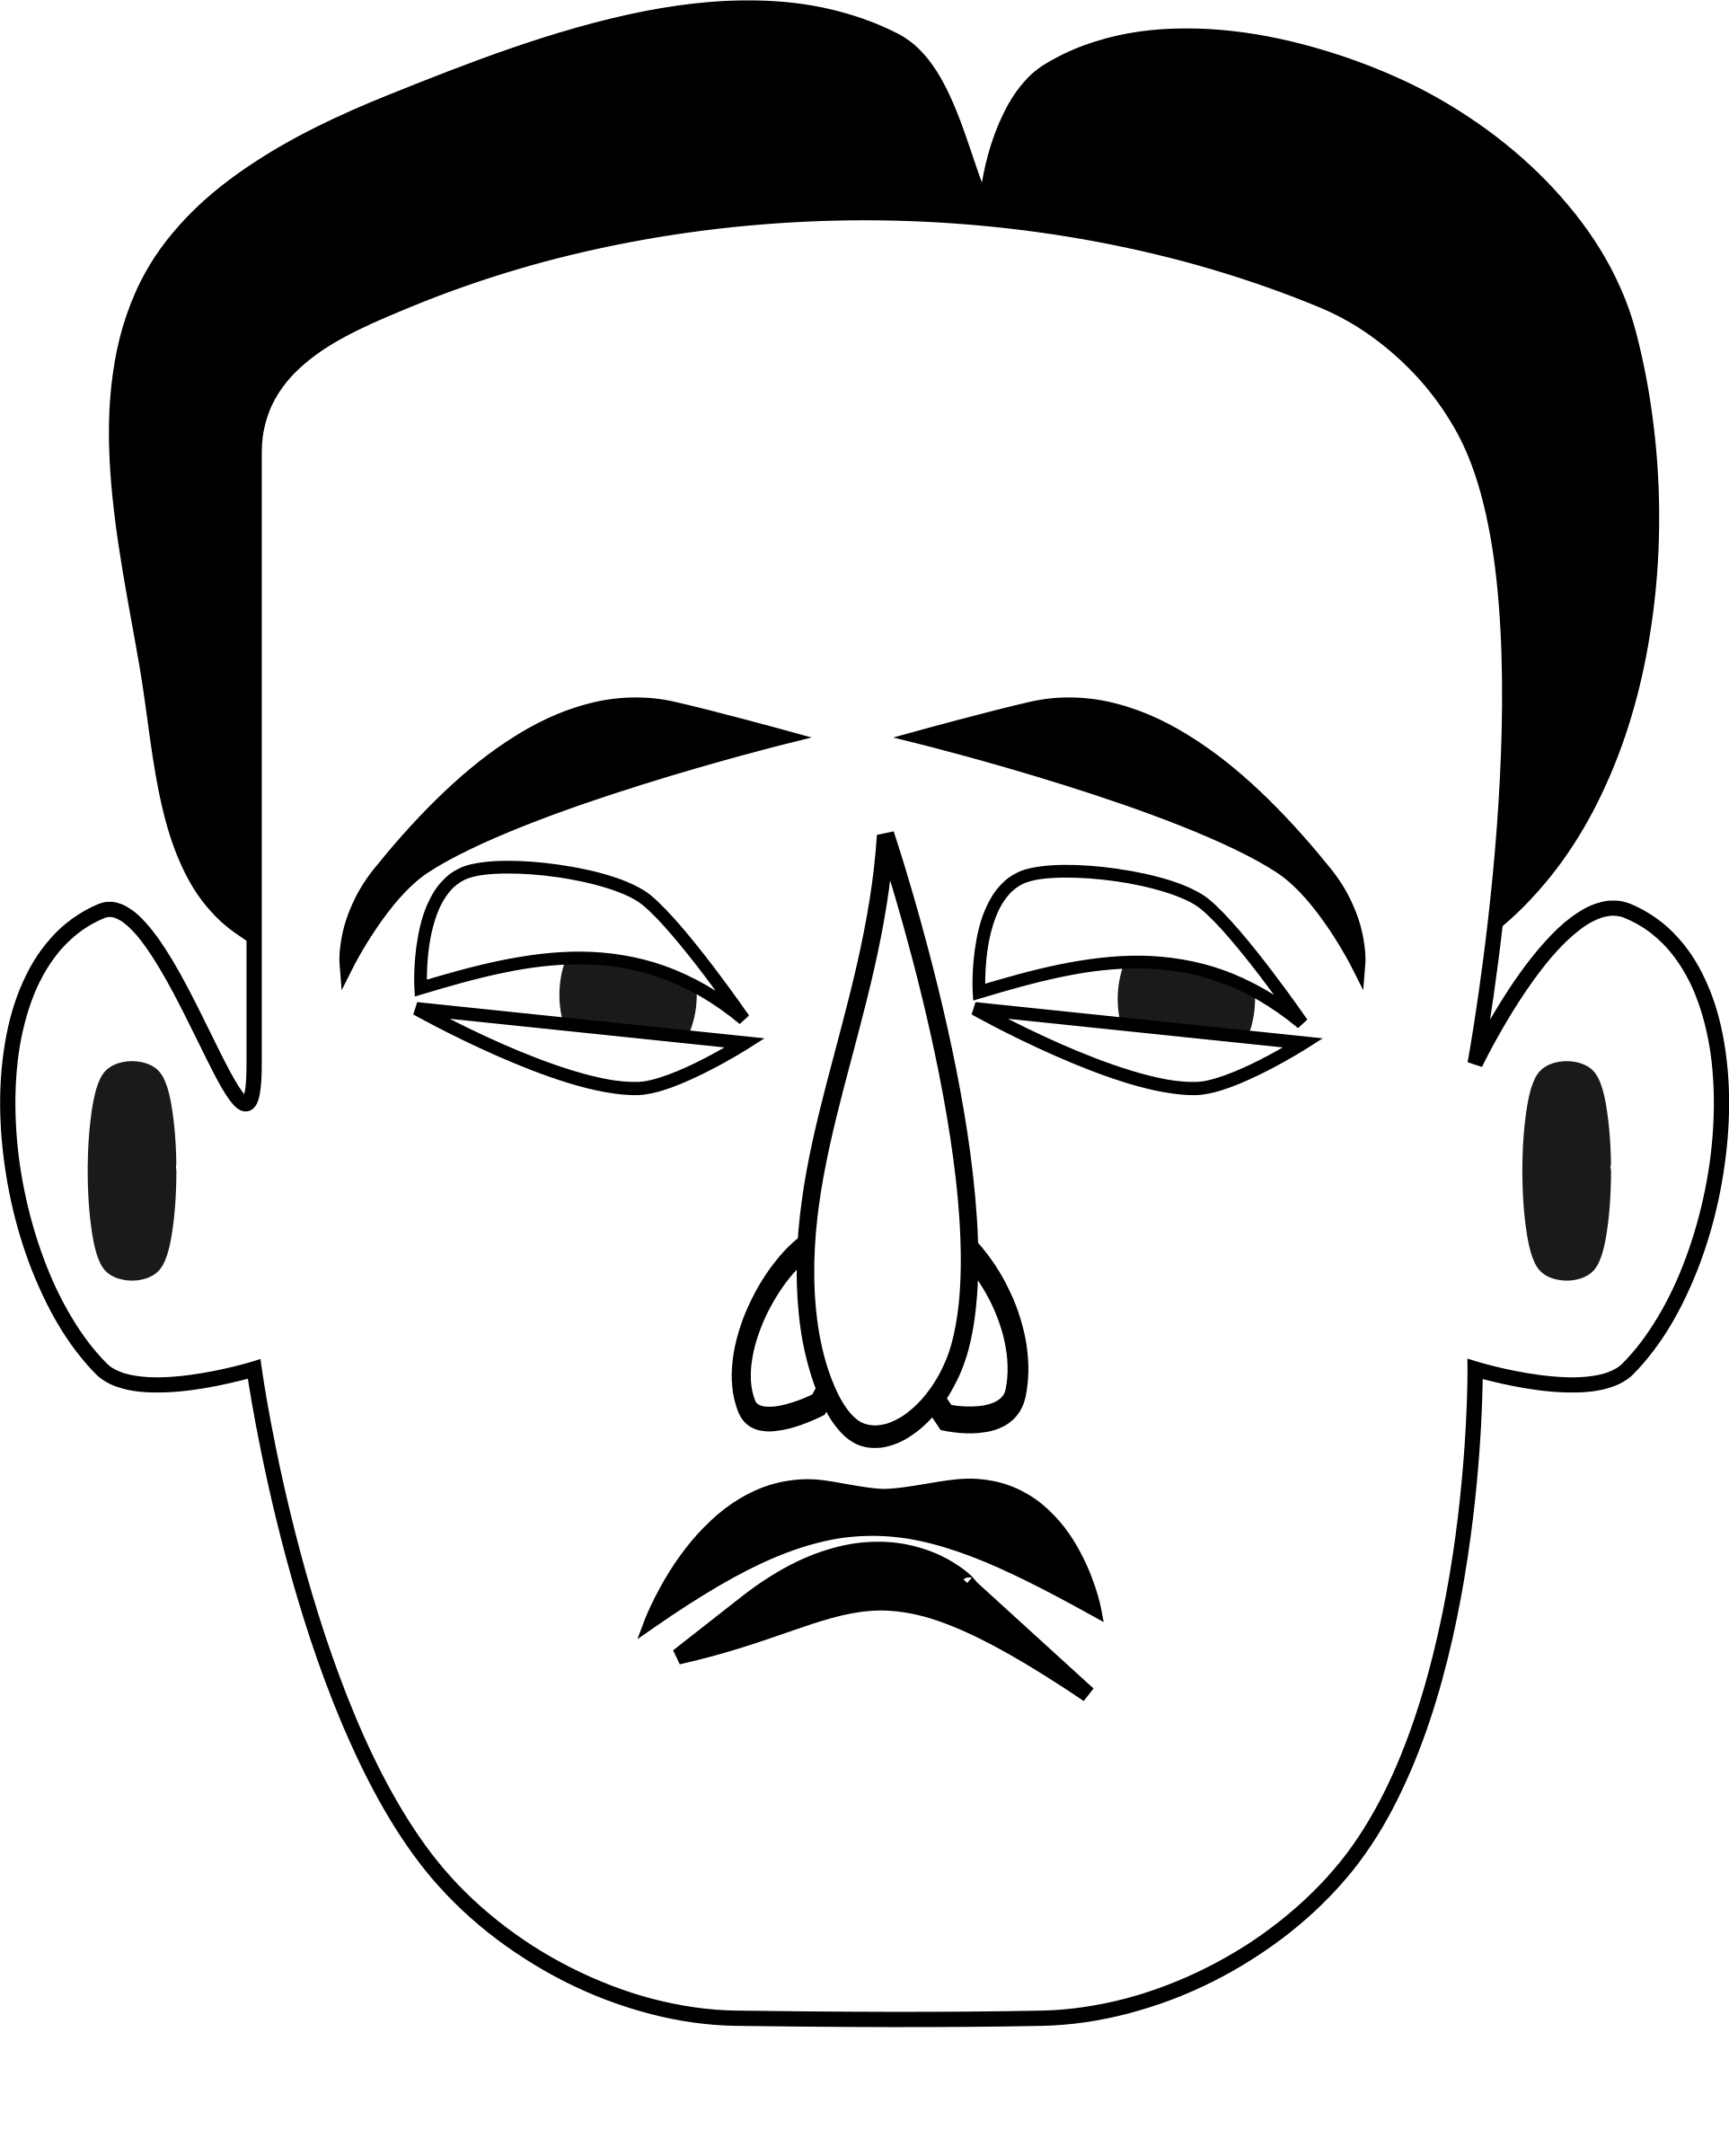 Sad face clip art black and white.